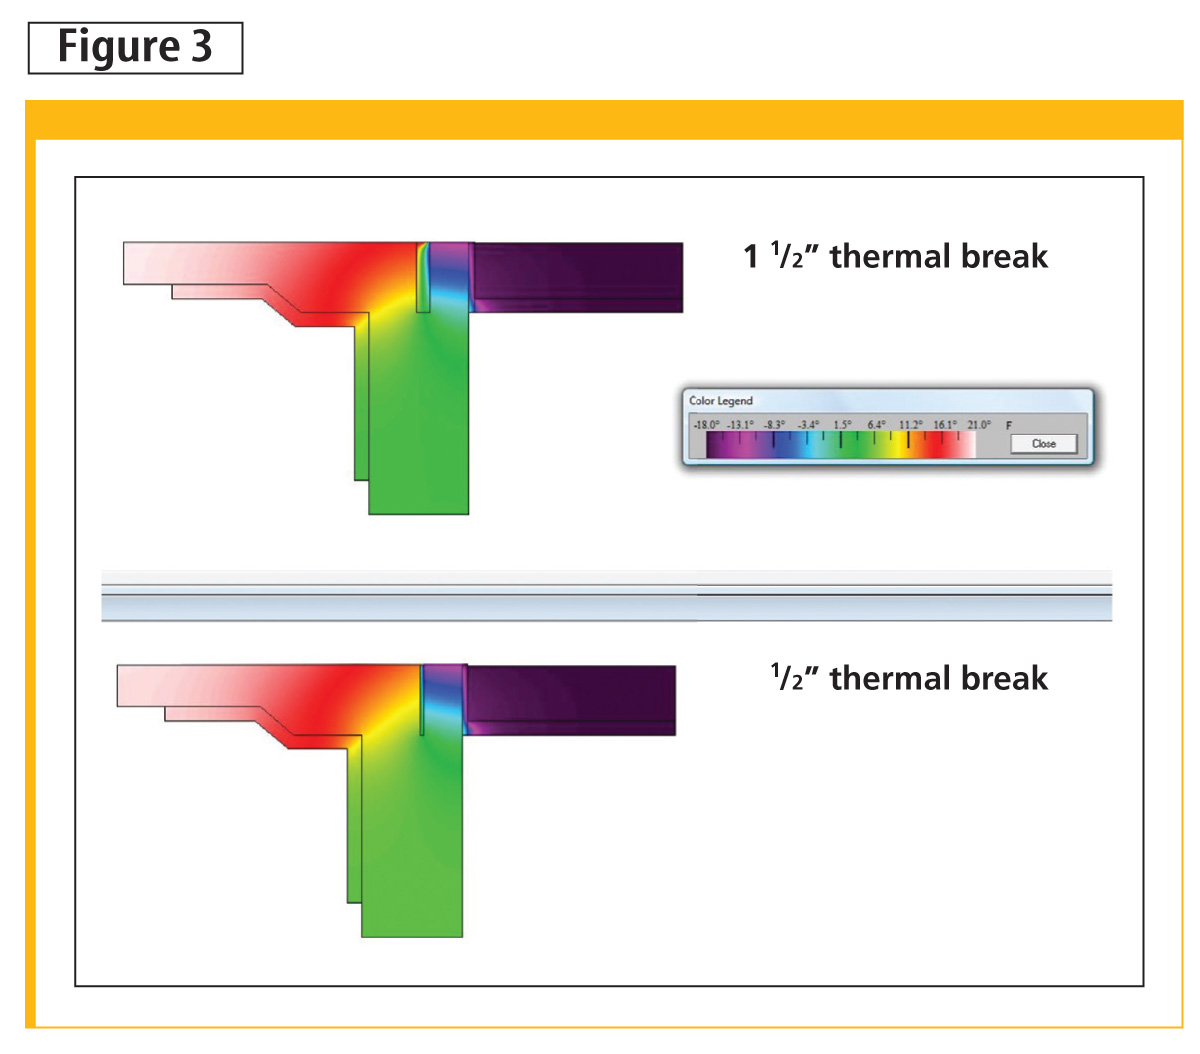 Two foundation options at grade showing a typical thermal break in a wall.